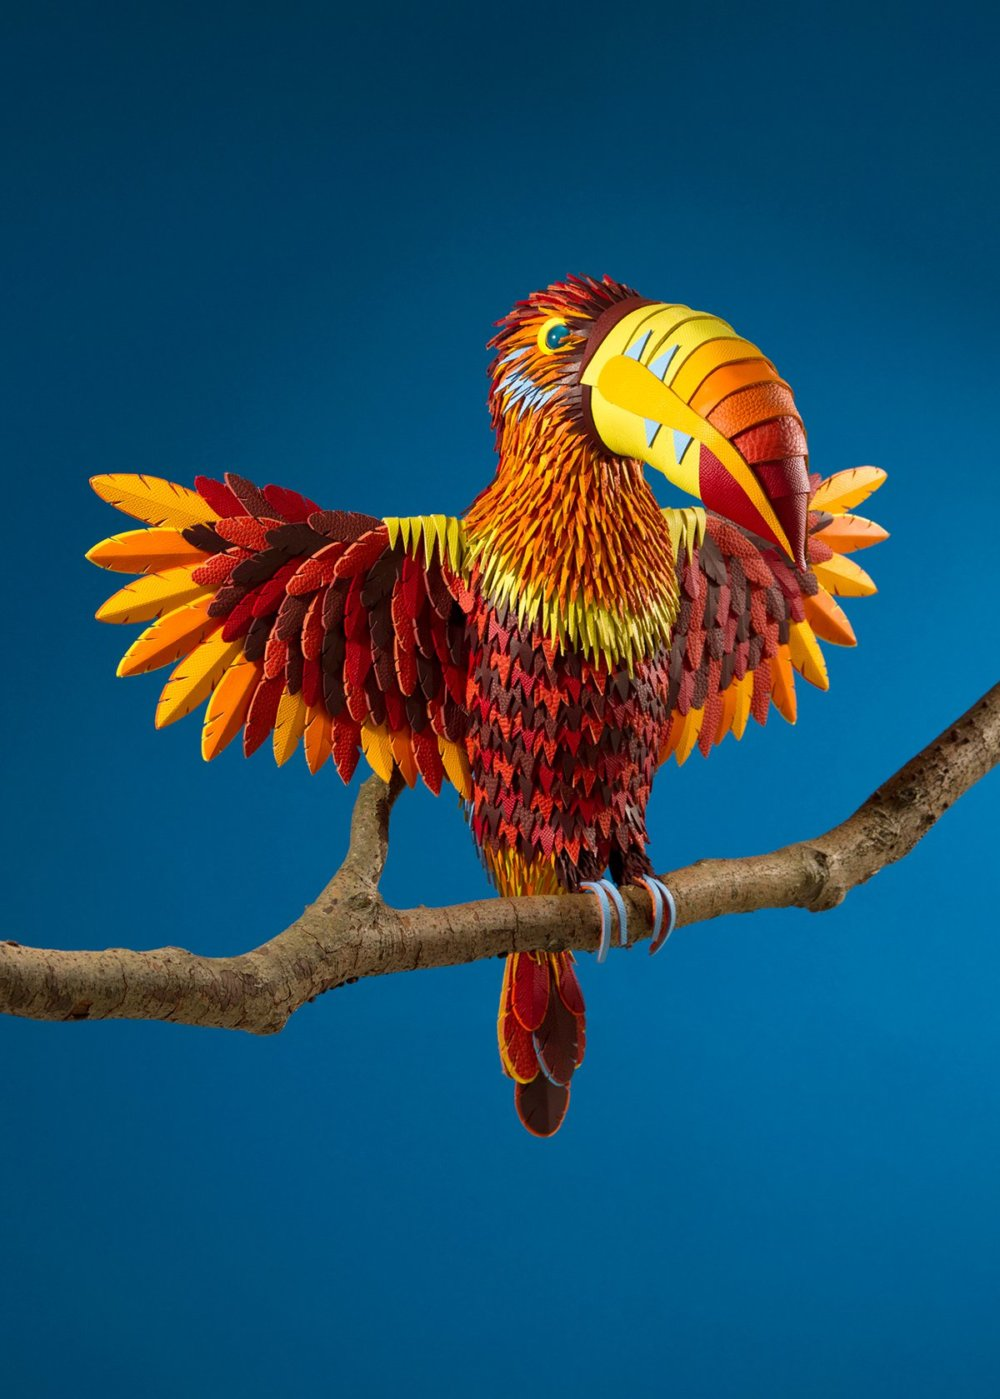 Colorful Sculptures Of Wild Animals Made From Leftover Pieces Of Leather By Lucie Thomas And Thibault Zimmermann 3